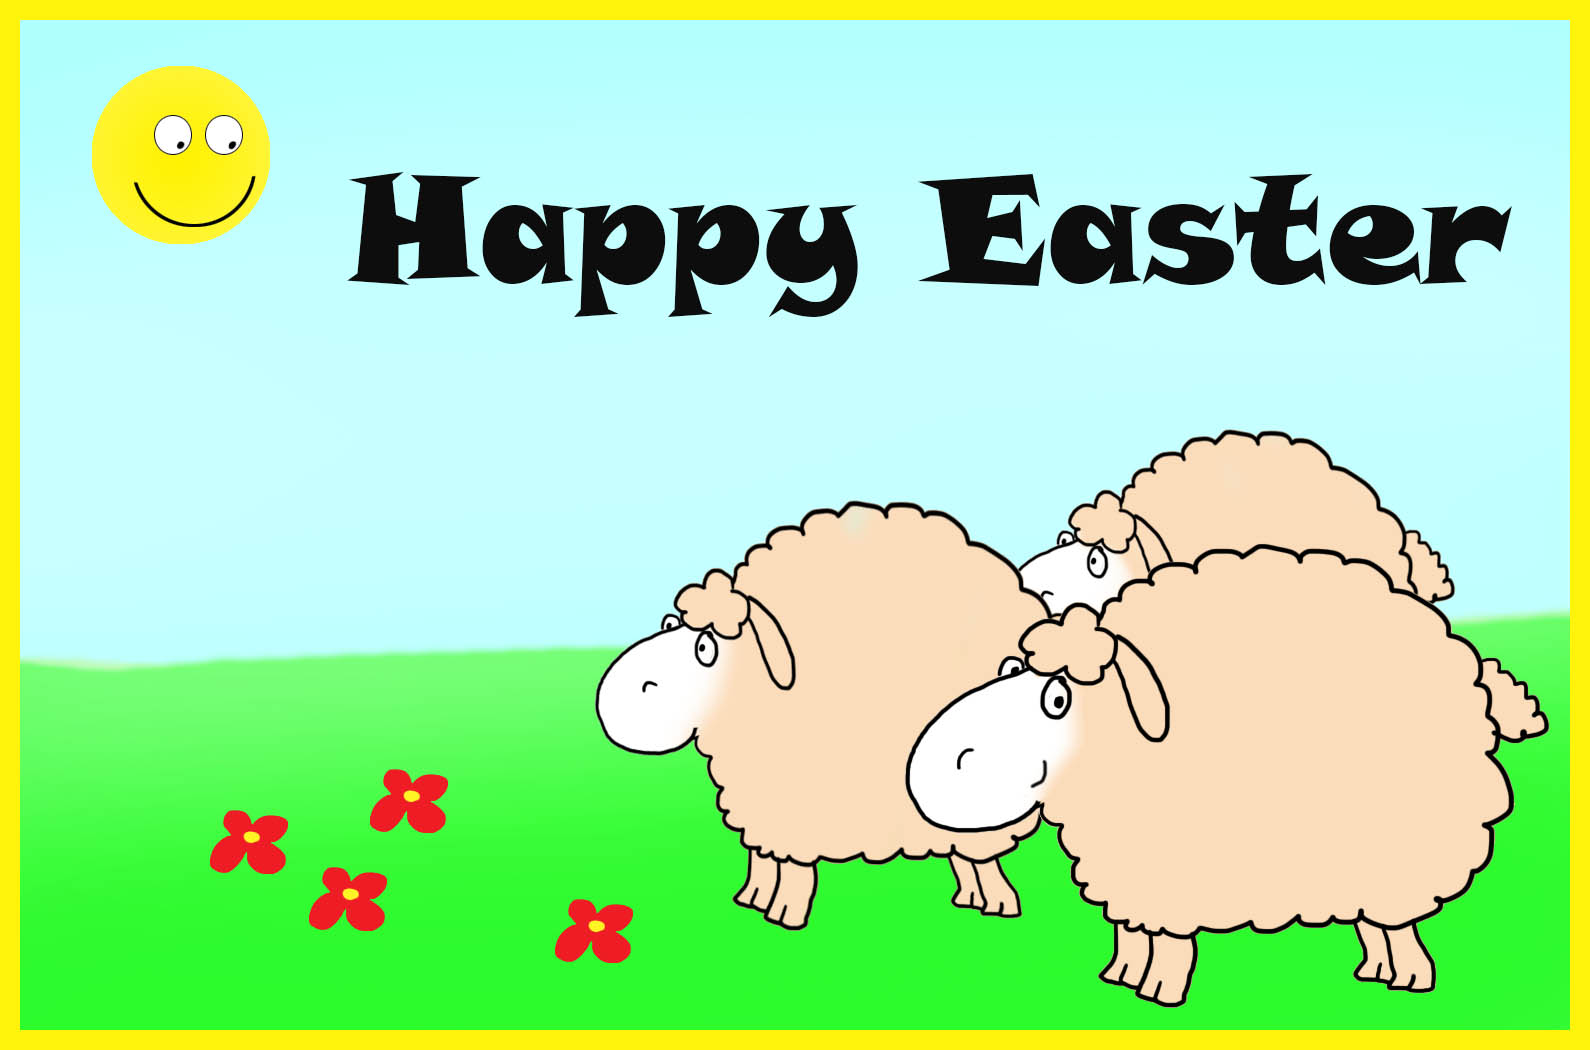 16 free funny easter greeting cards happy easter card with sun and sheep kristyandbryce Choice Image